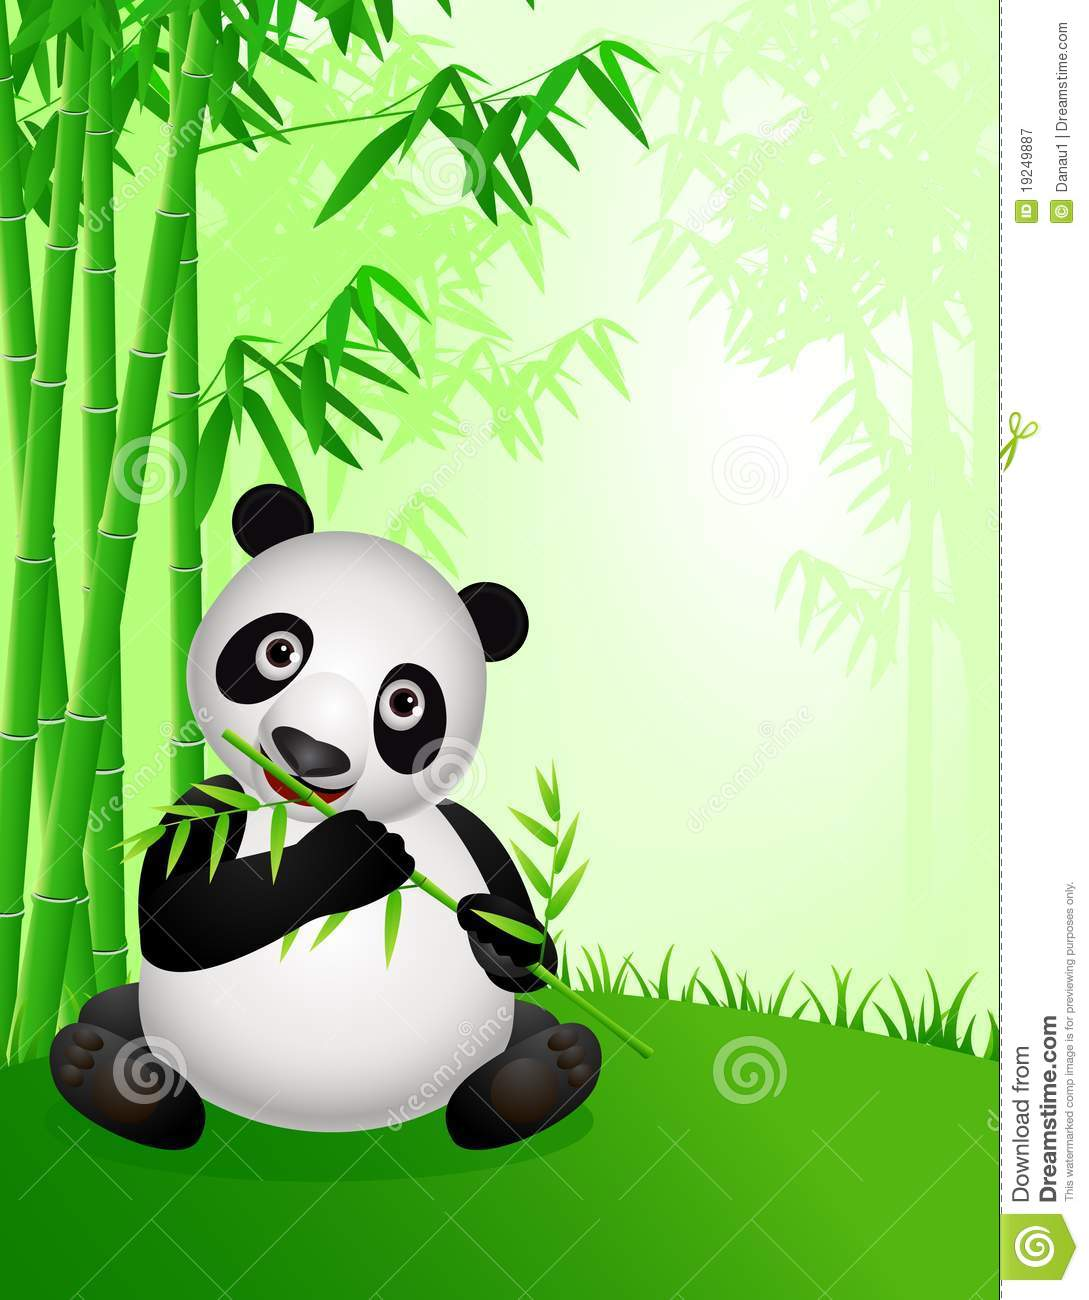 Baby Animal Wall Stickers Cute Panda Cartoon In The Nature Royalty Free Stock